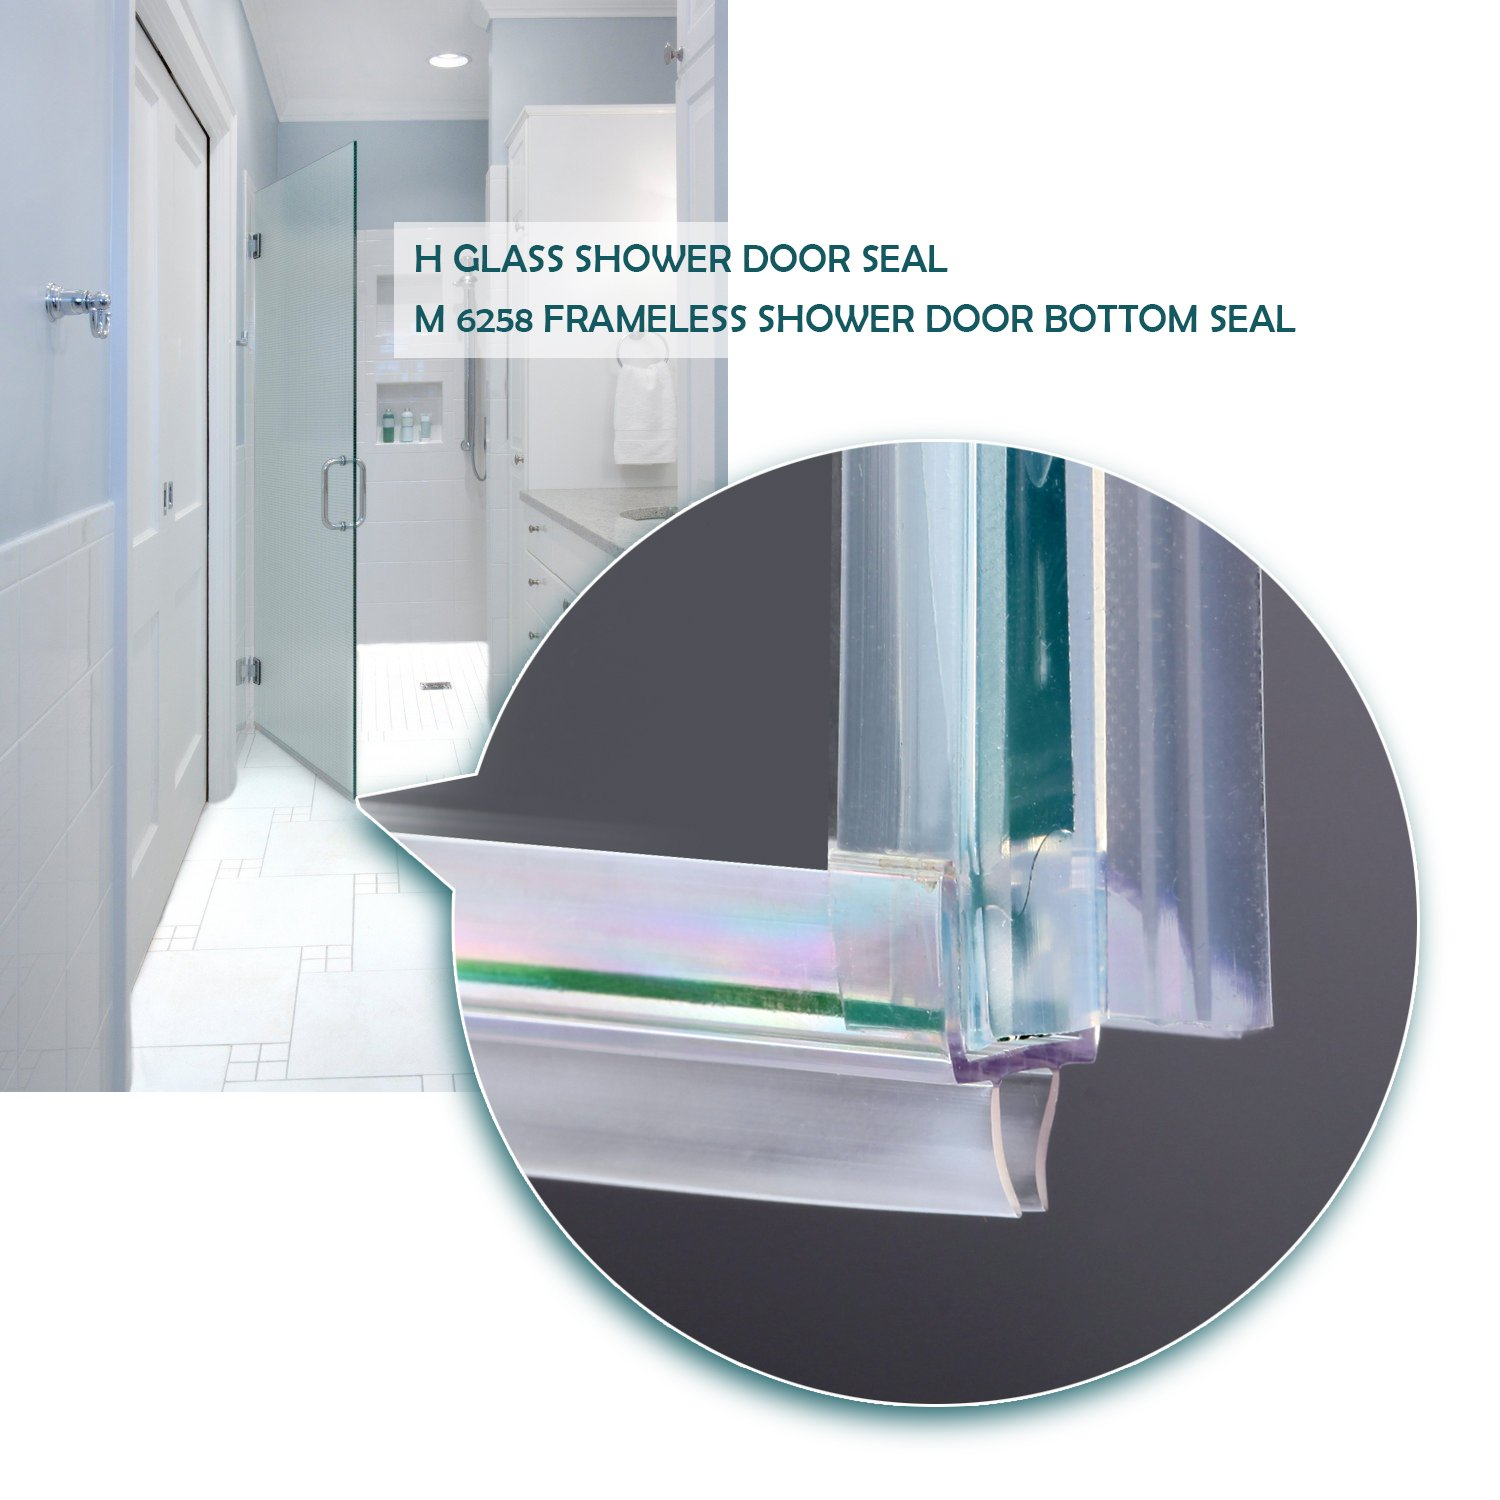 Shower Door Sweep, Frameless Glass Shower Weather Stripping for Door Bottom-36 Inch Length M-3/8 inch + 72 Inch Length H-3/8 inch (3/8 inch(10mm), M+h-Type) by MAGZO (Image #6)